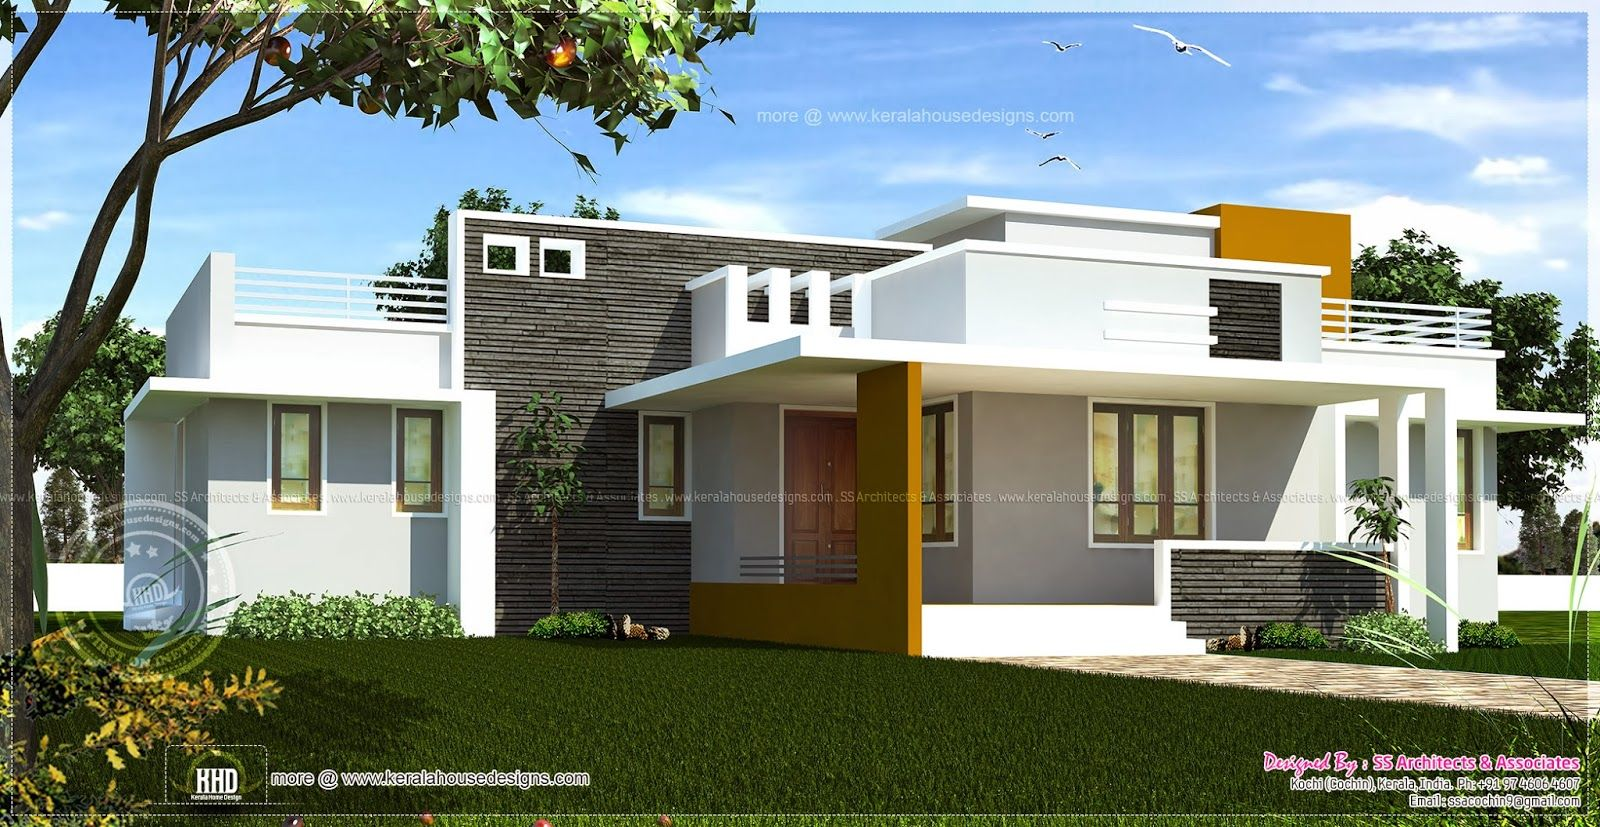 Excellent single home designs single floor contemporary for Contemporary house in kerala